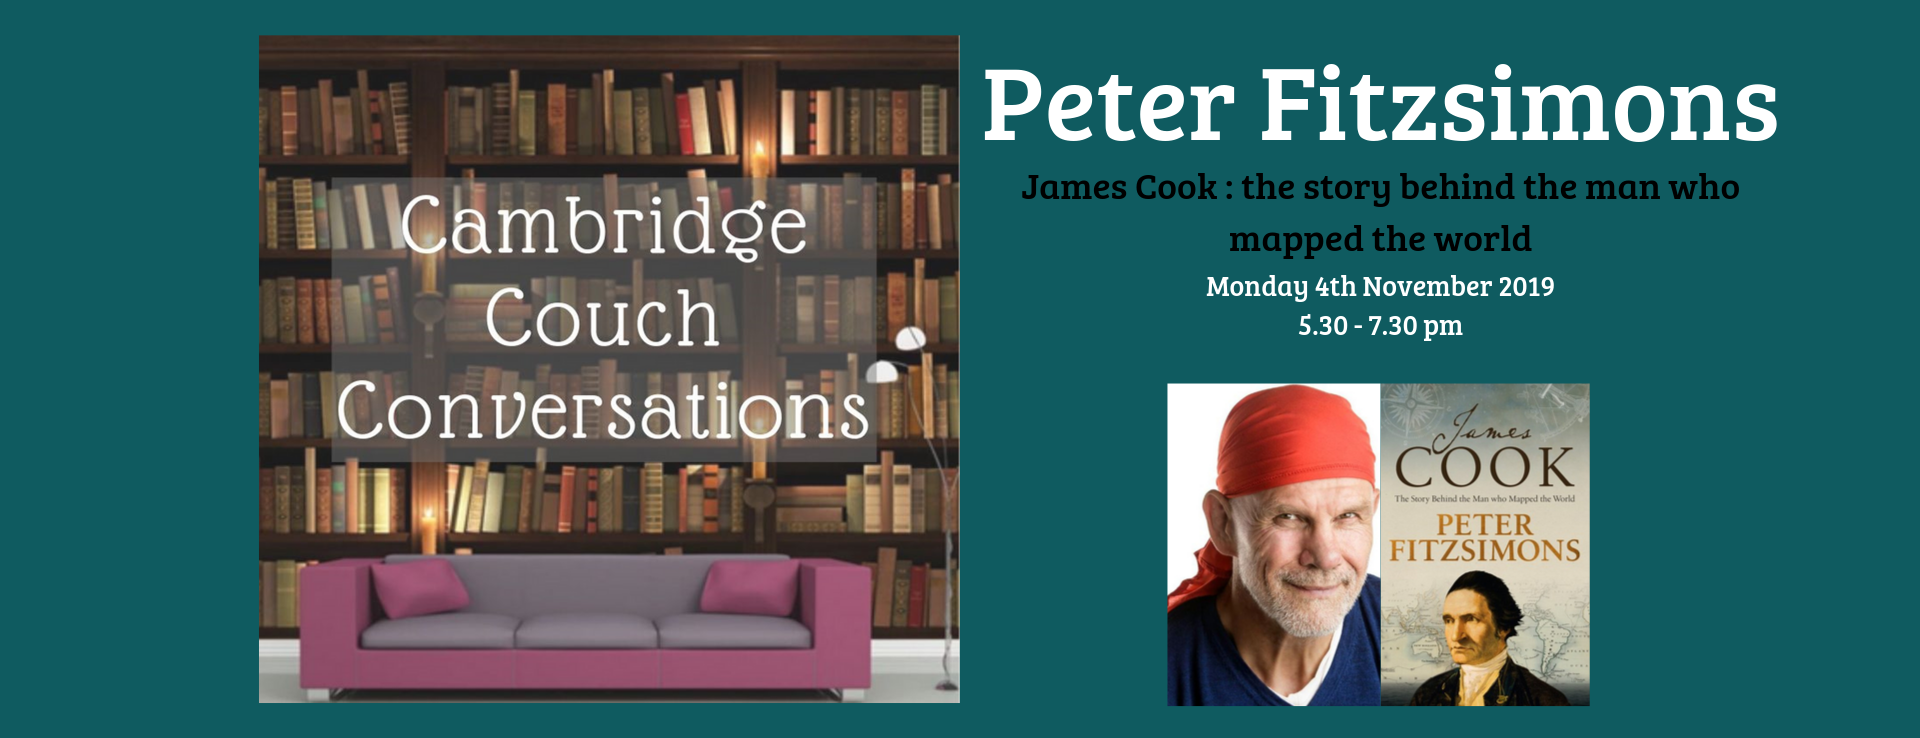 Cambridge_Couch_Conversations_Peter-Fitzsimons-1